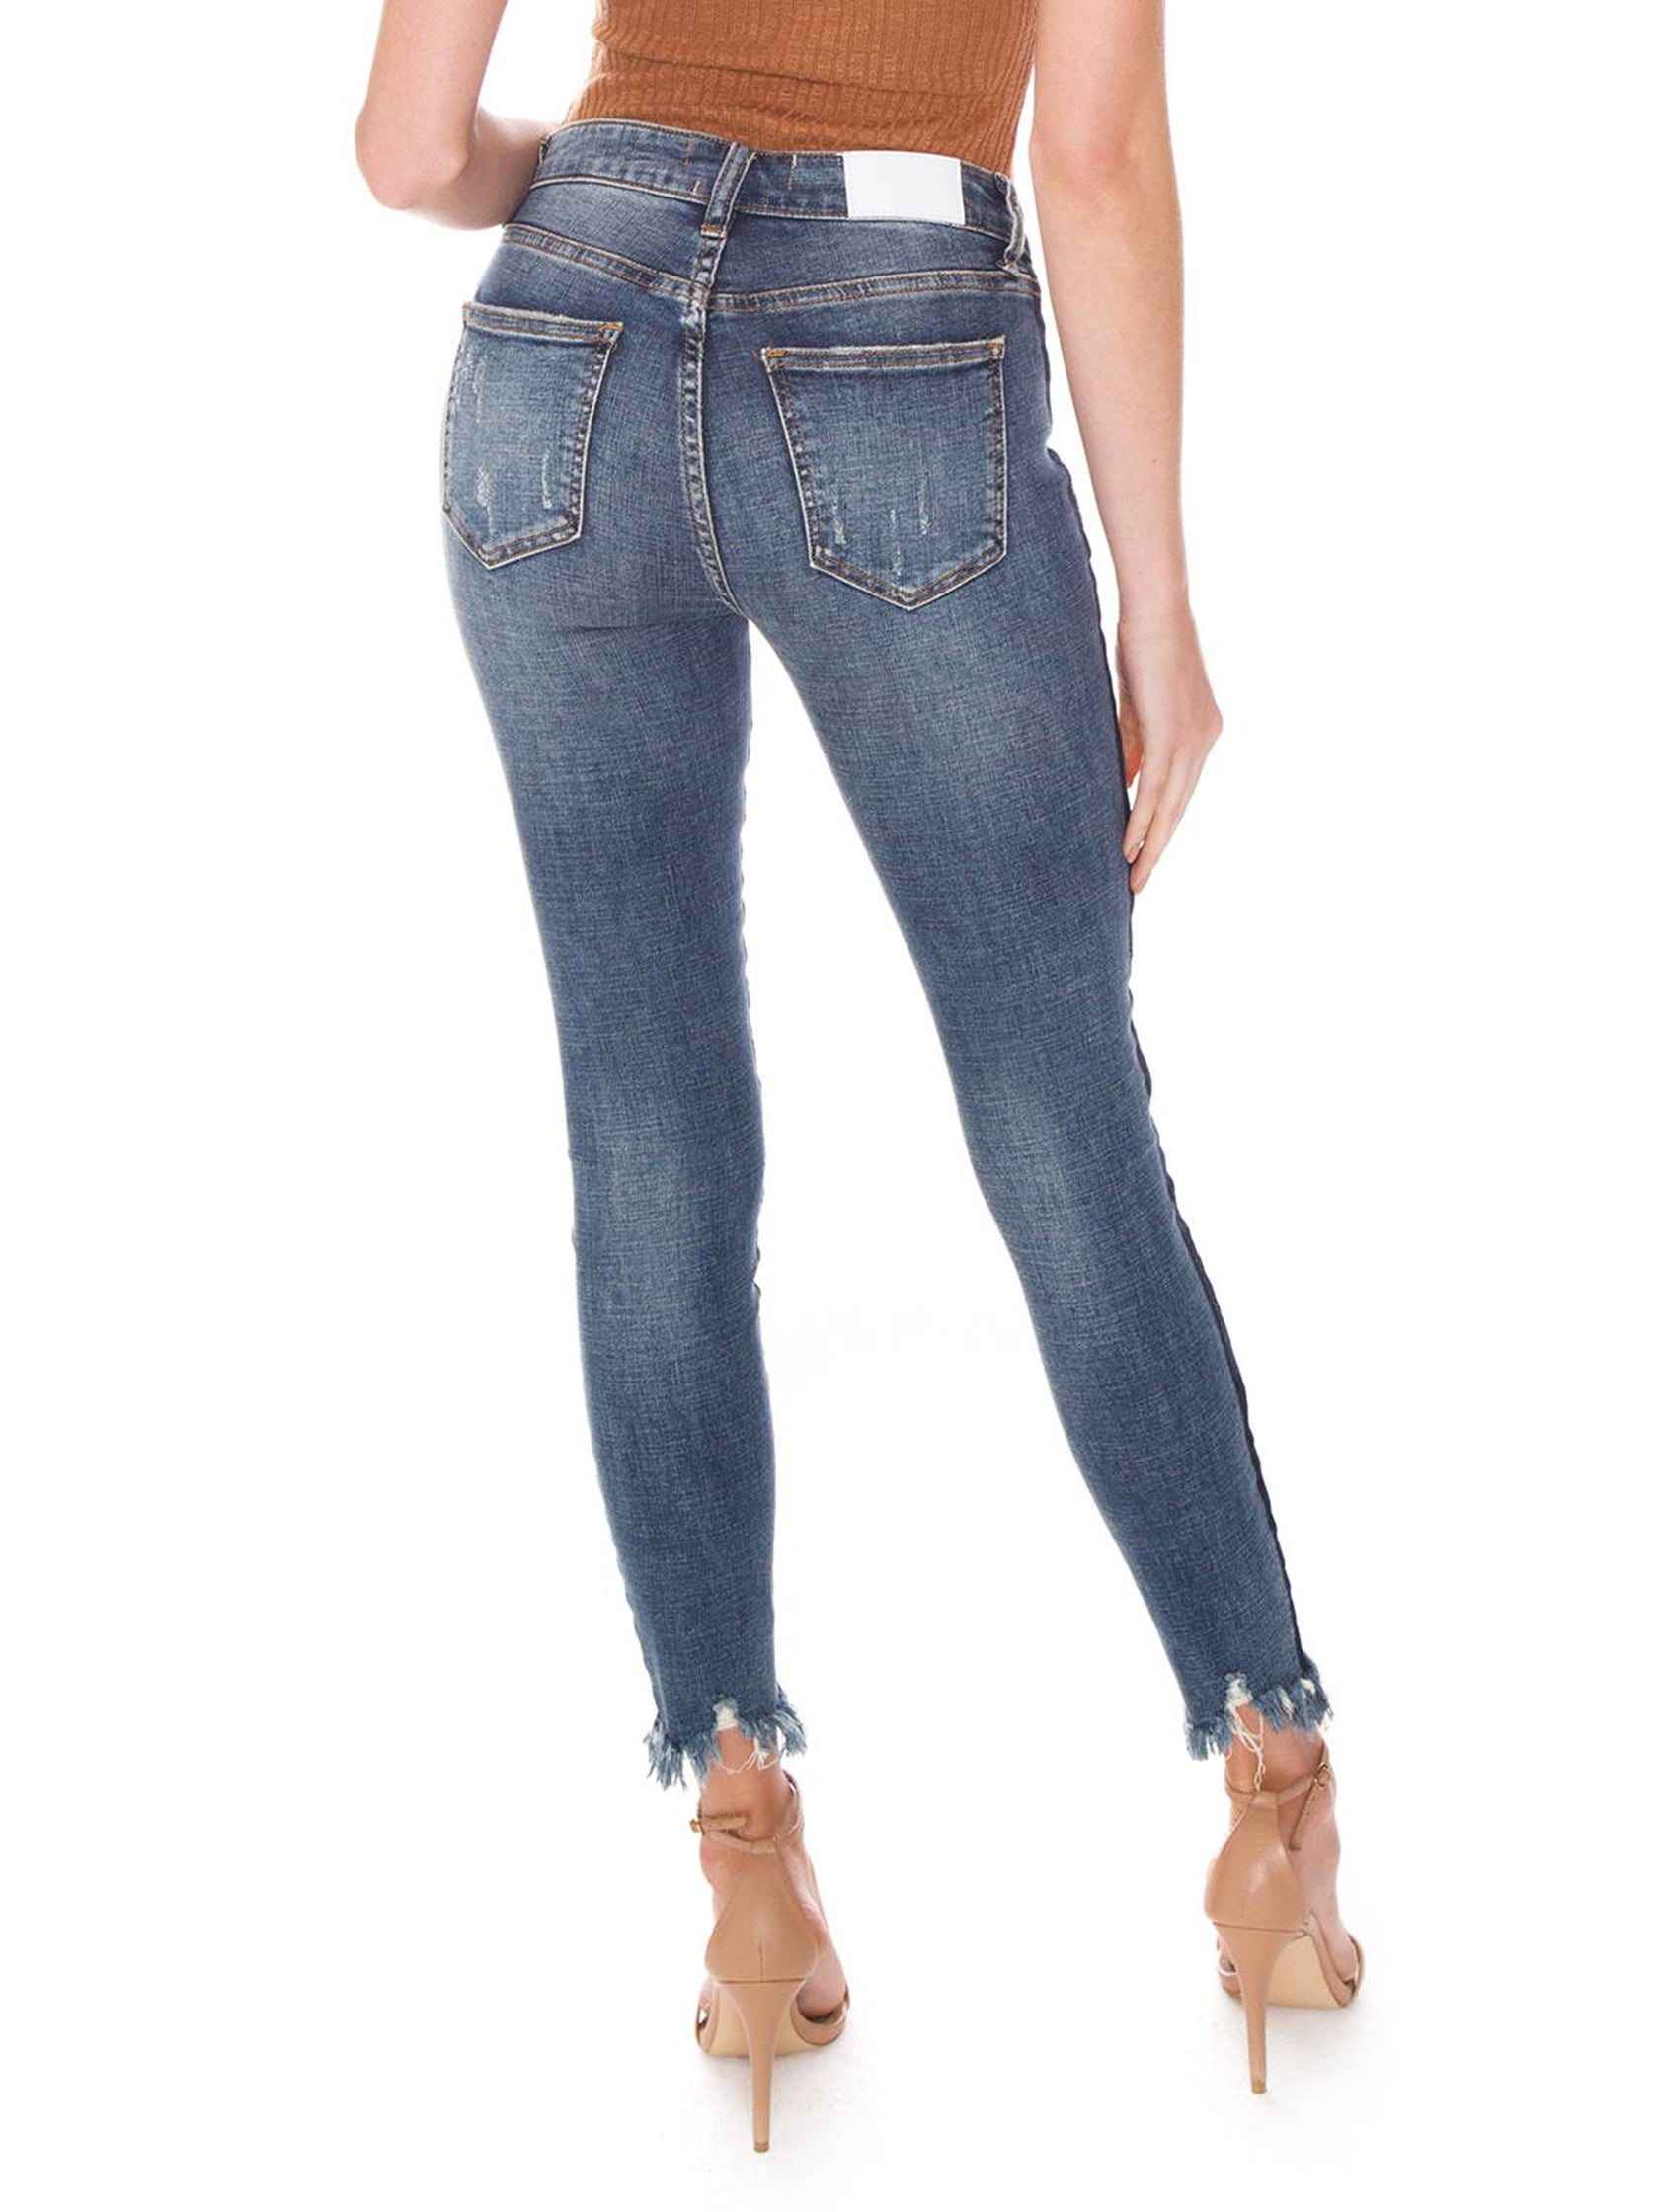 Women outfit in a denim rental from PISTOLA called Audrey Mid Rise Skinny Jeans - Situational